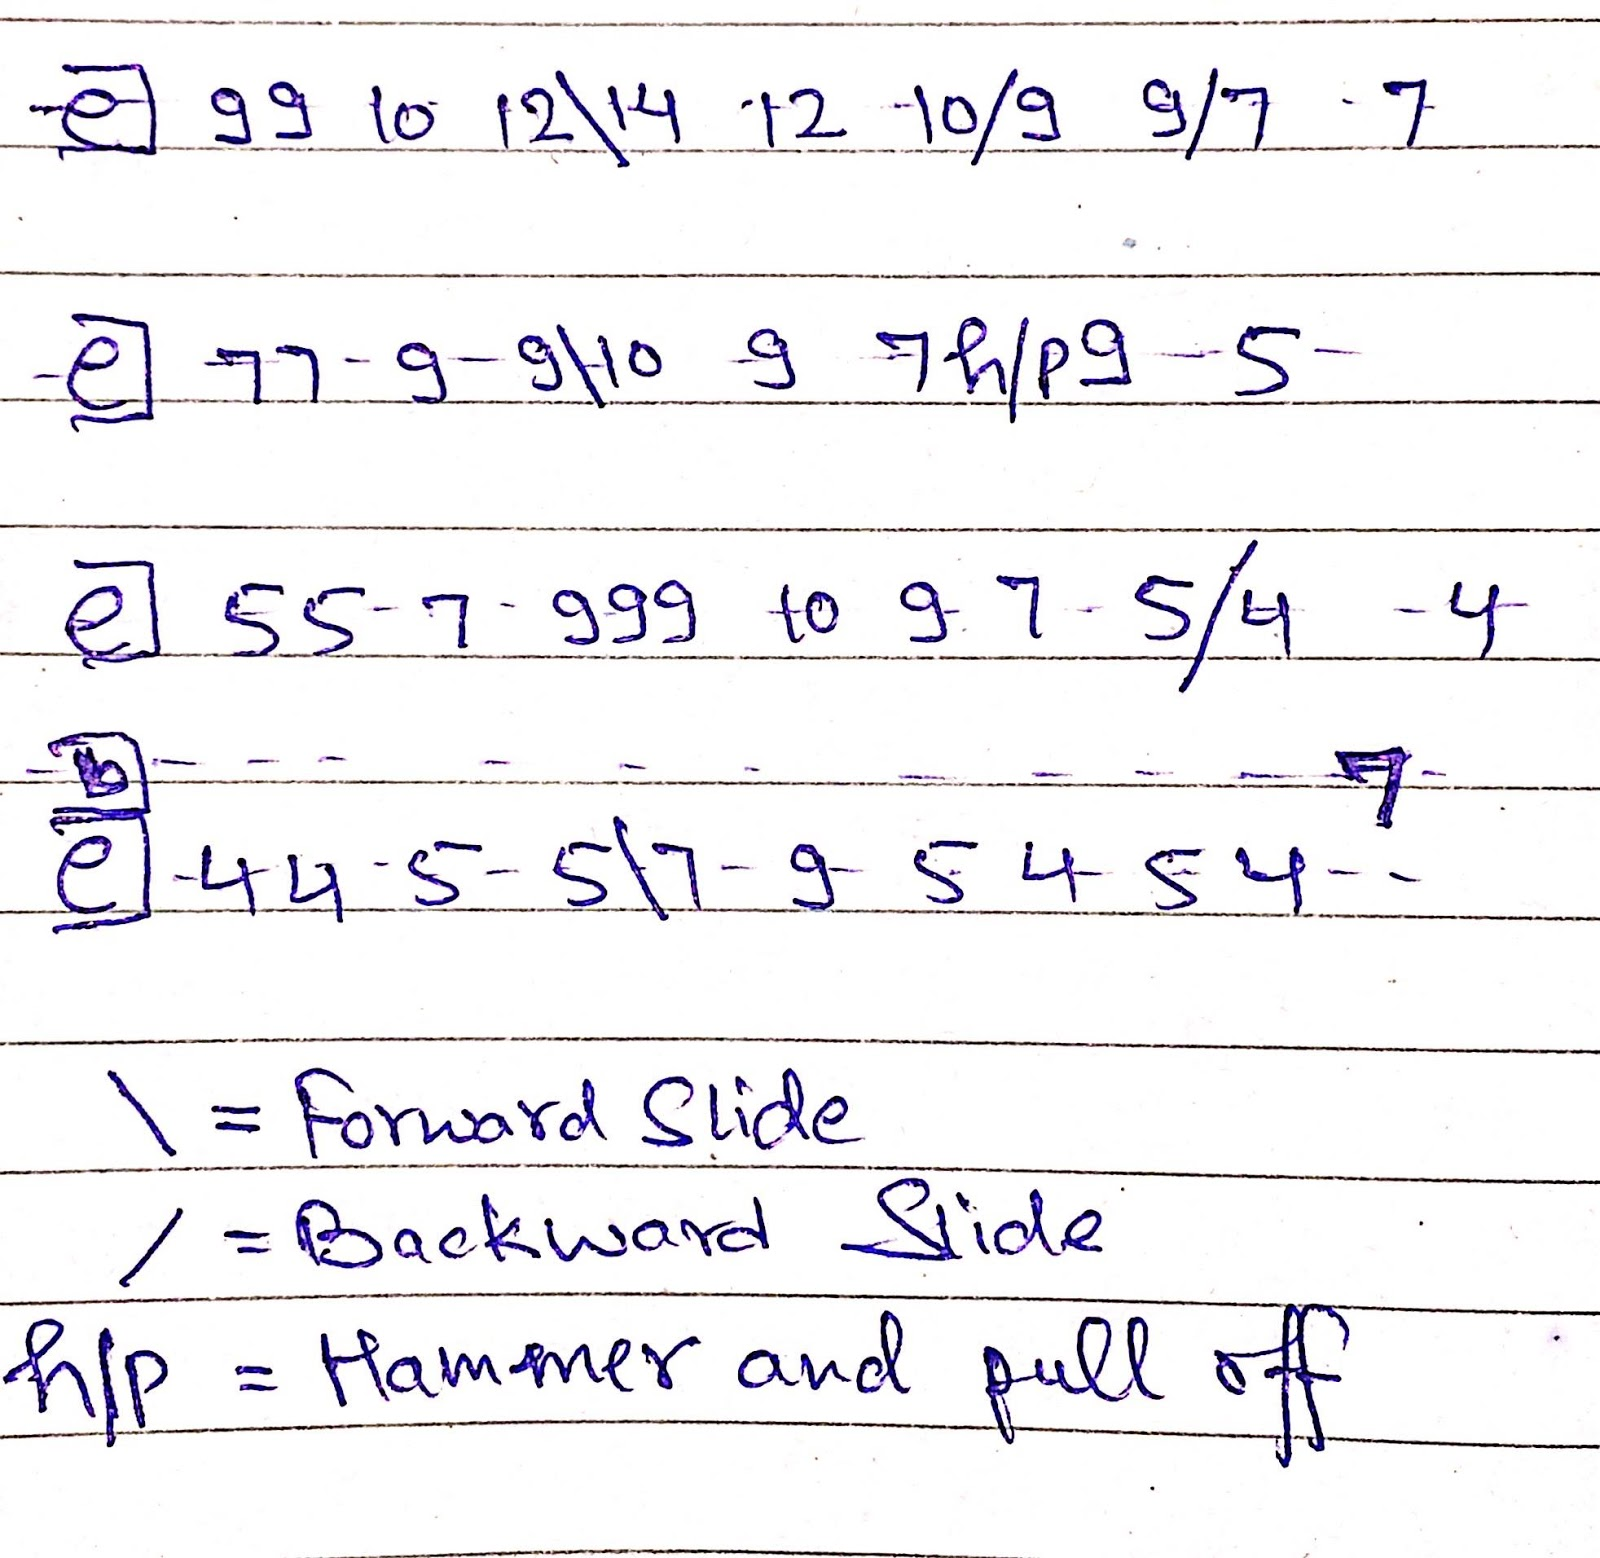 Guitar Tabs For Hindi Songs On Single String idea gallery